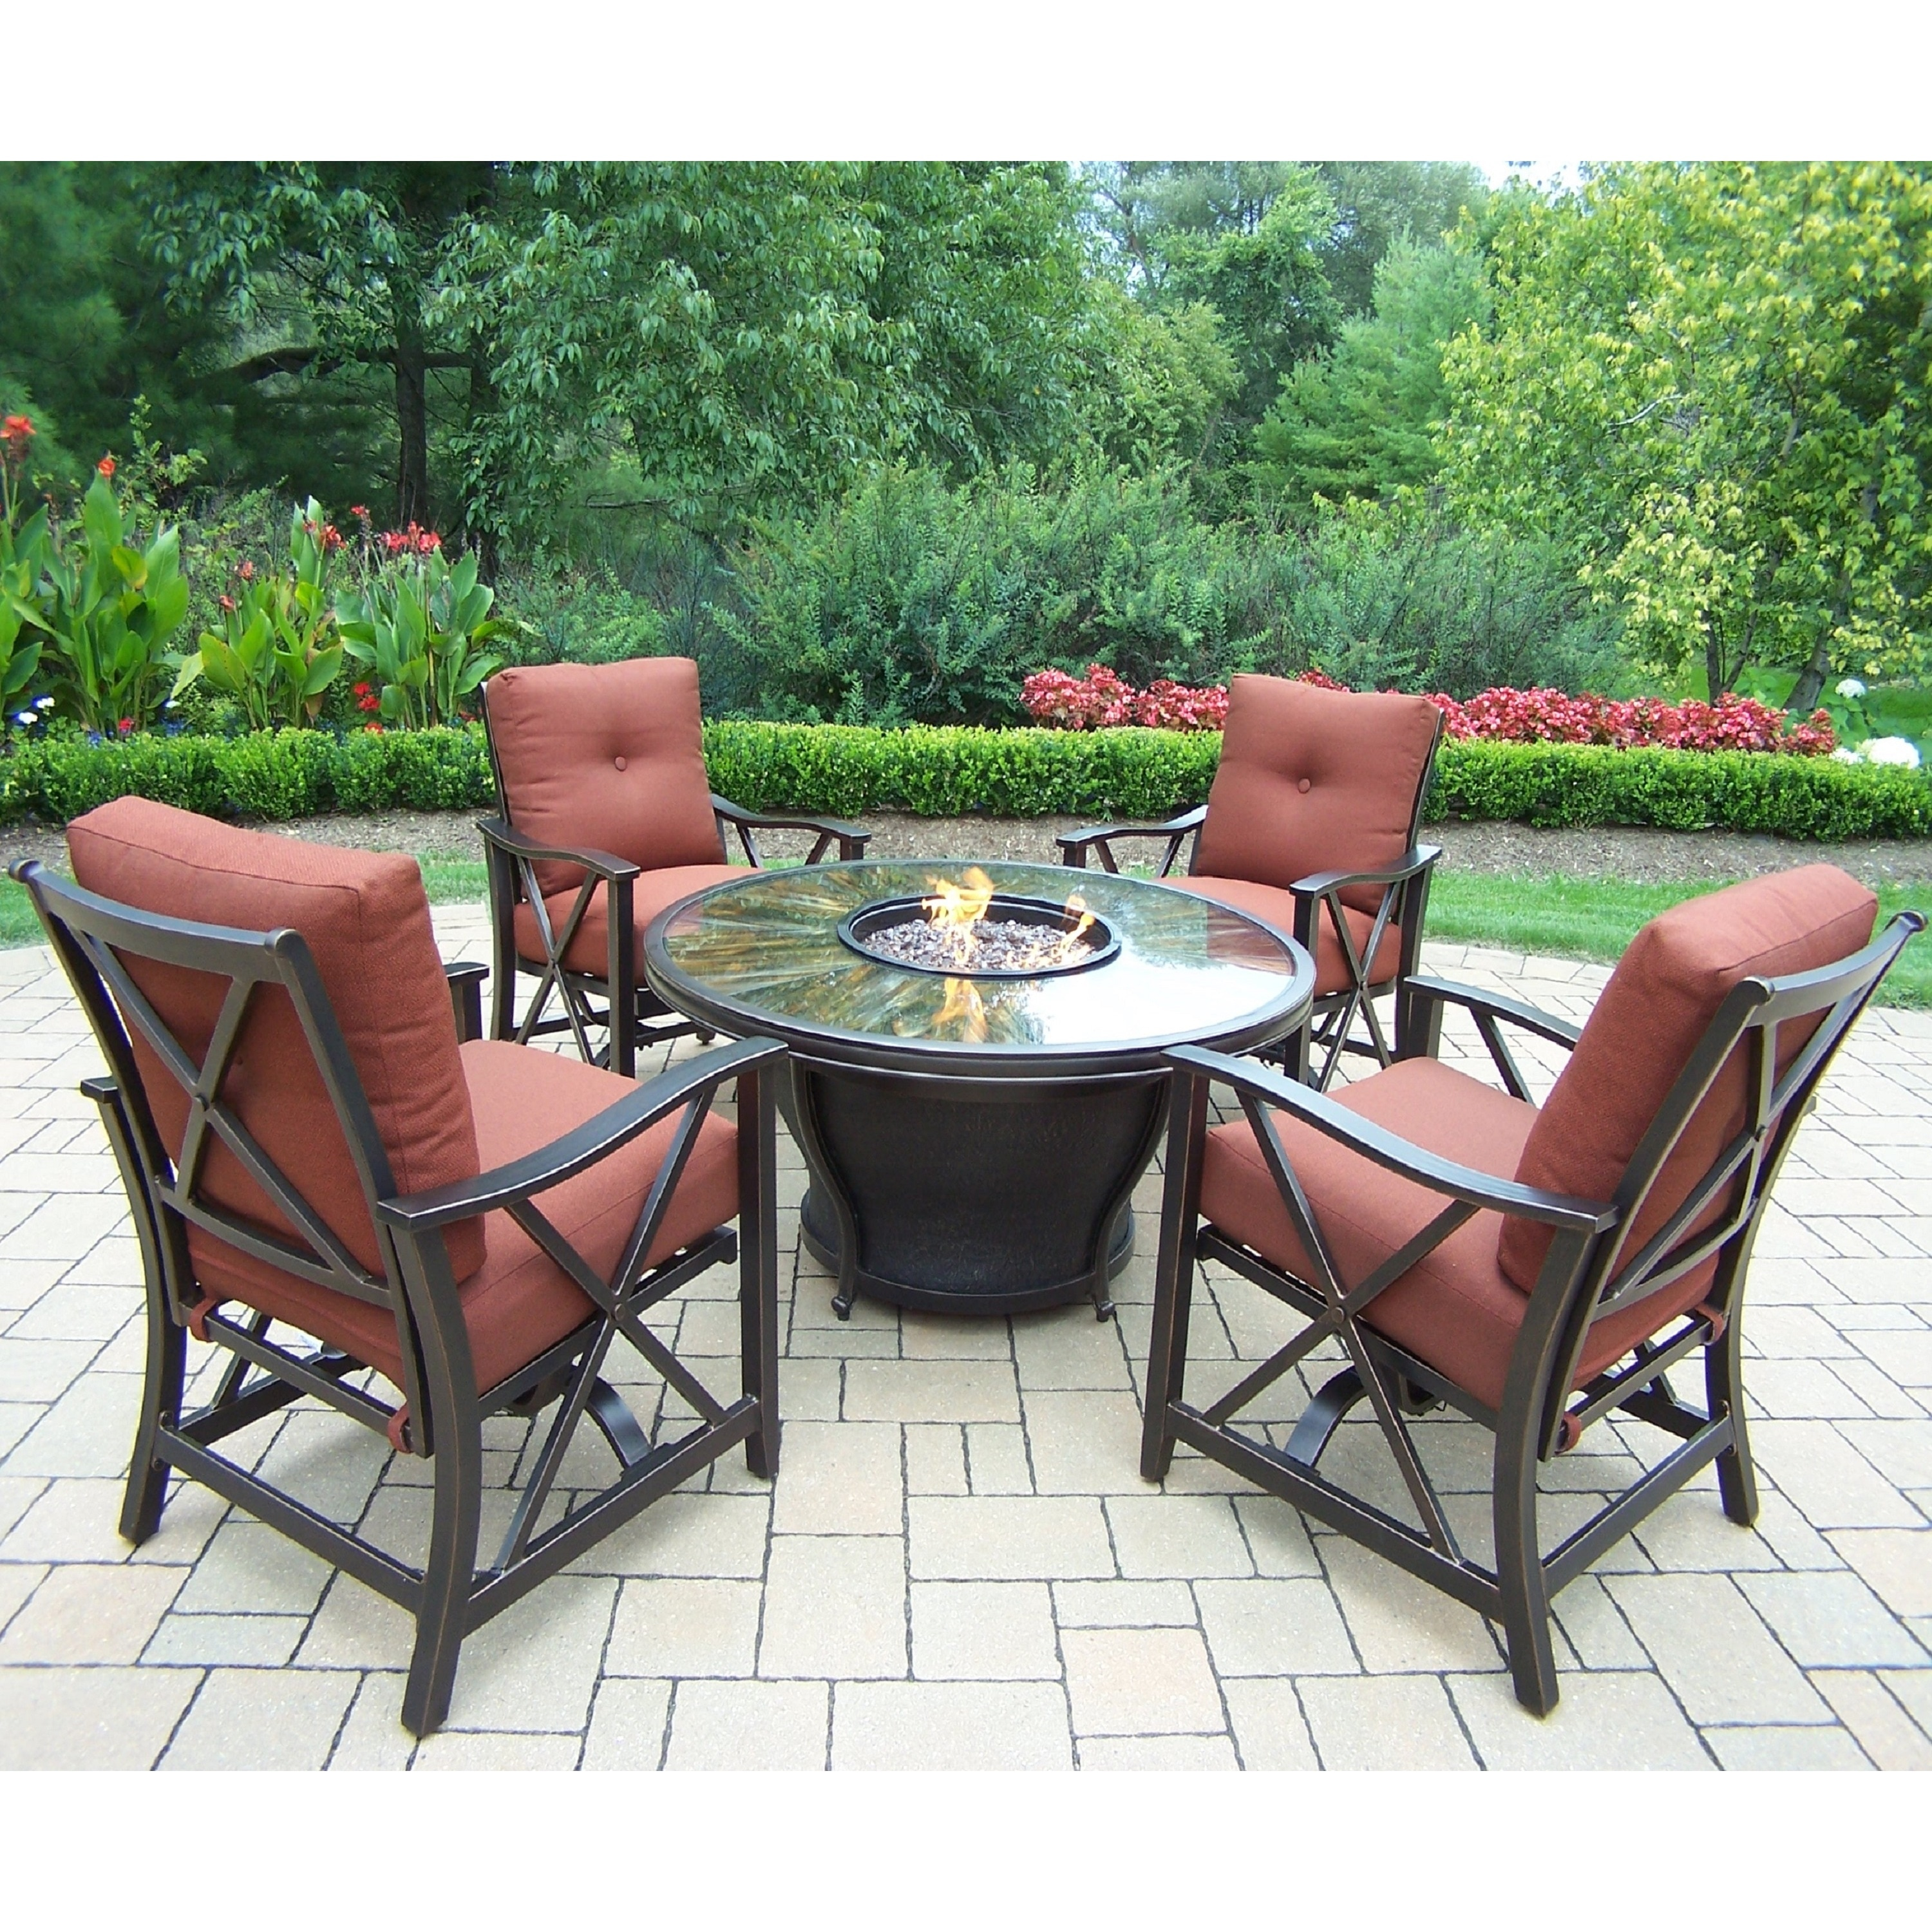 Shop Chat Set With Round Firepit Table, Cover, Rocking Chairs And Cushions    On Sale   Free Shipping Today   Overstock.com   11020046